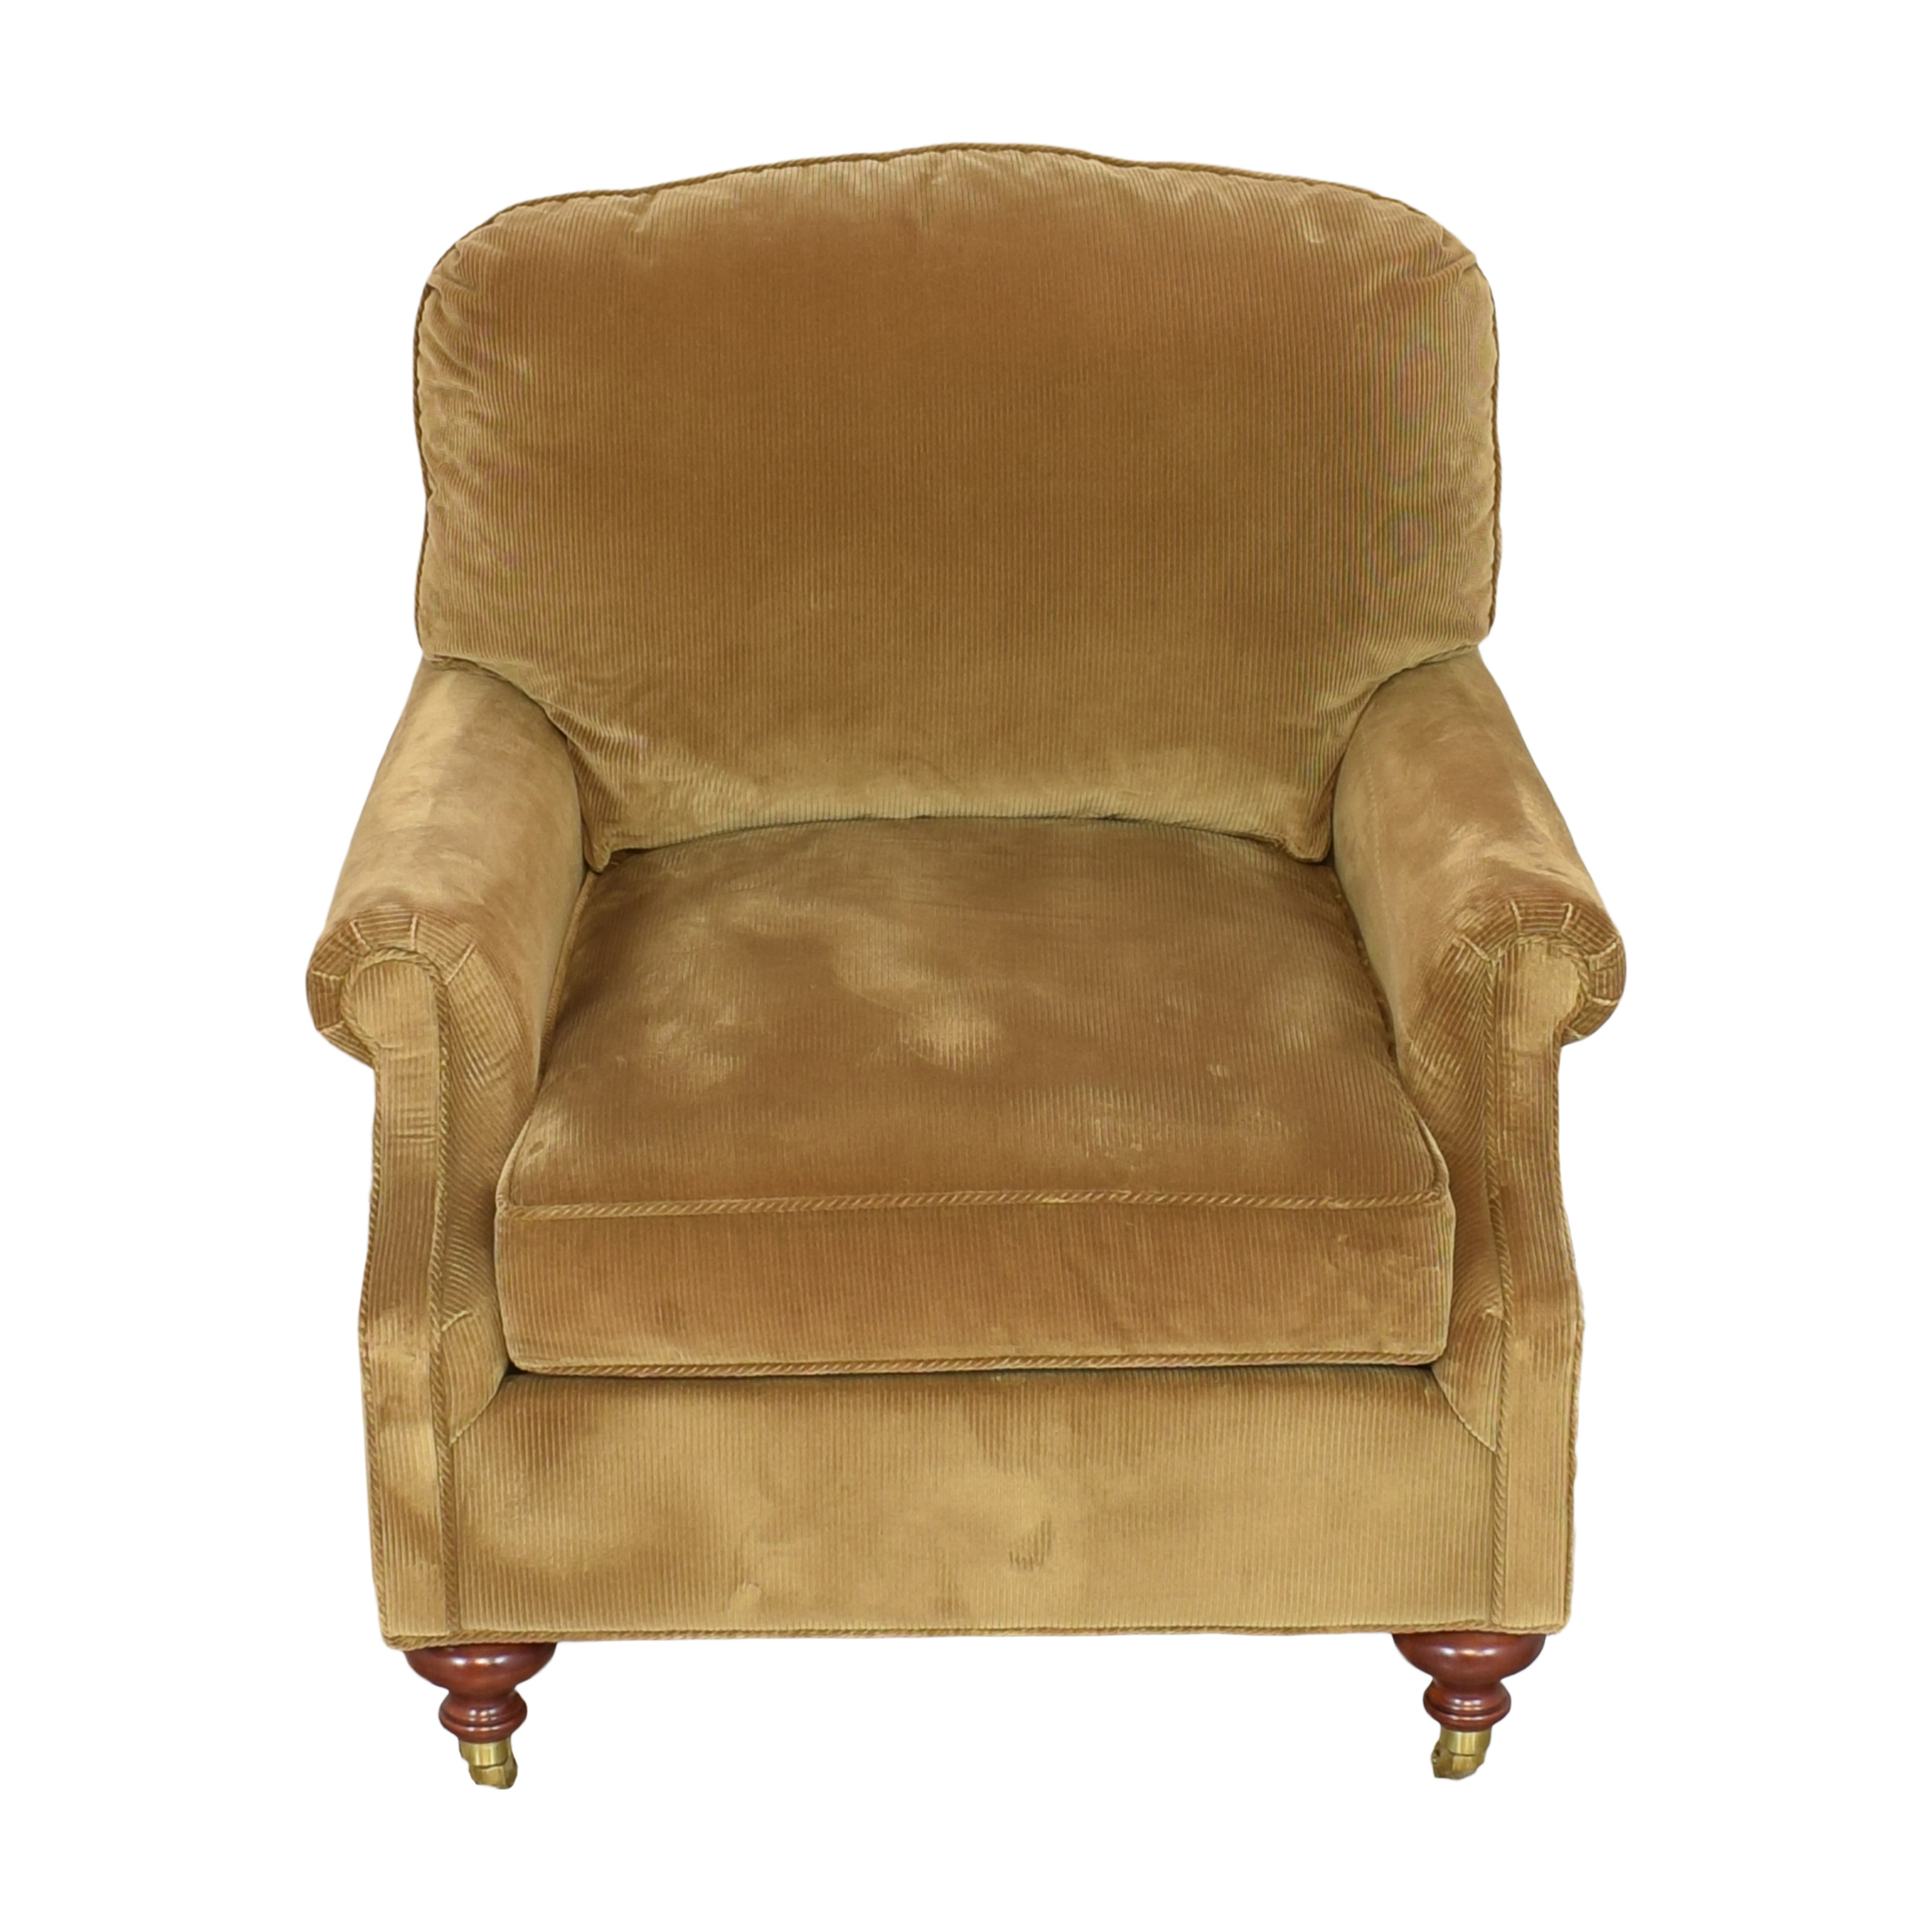 Charles Stewart Company Charles Stewart Company Accent Chair nyc